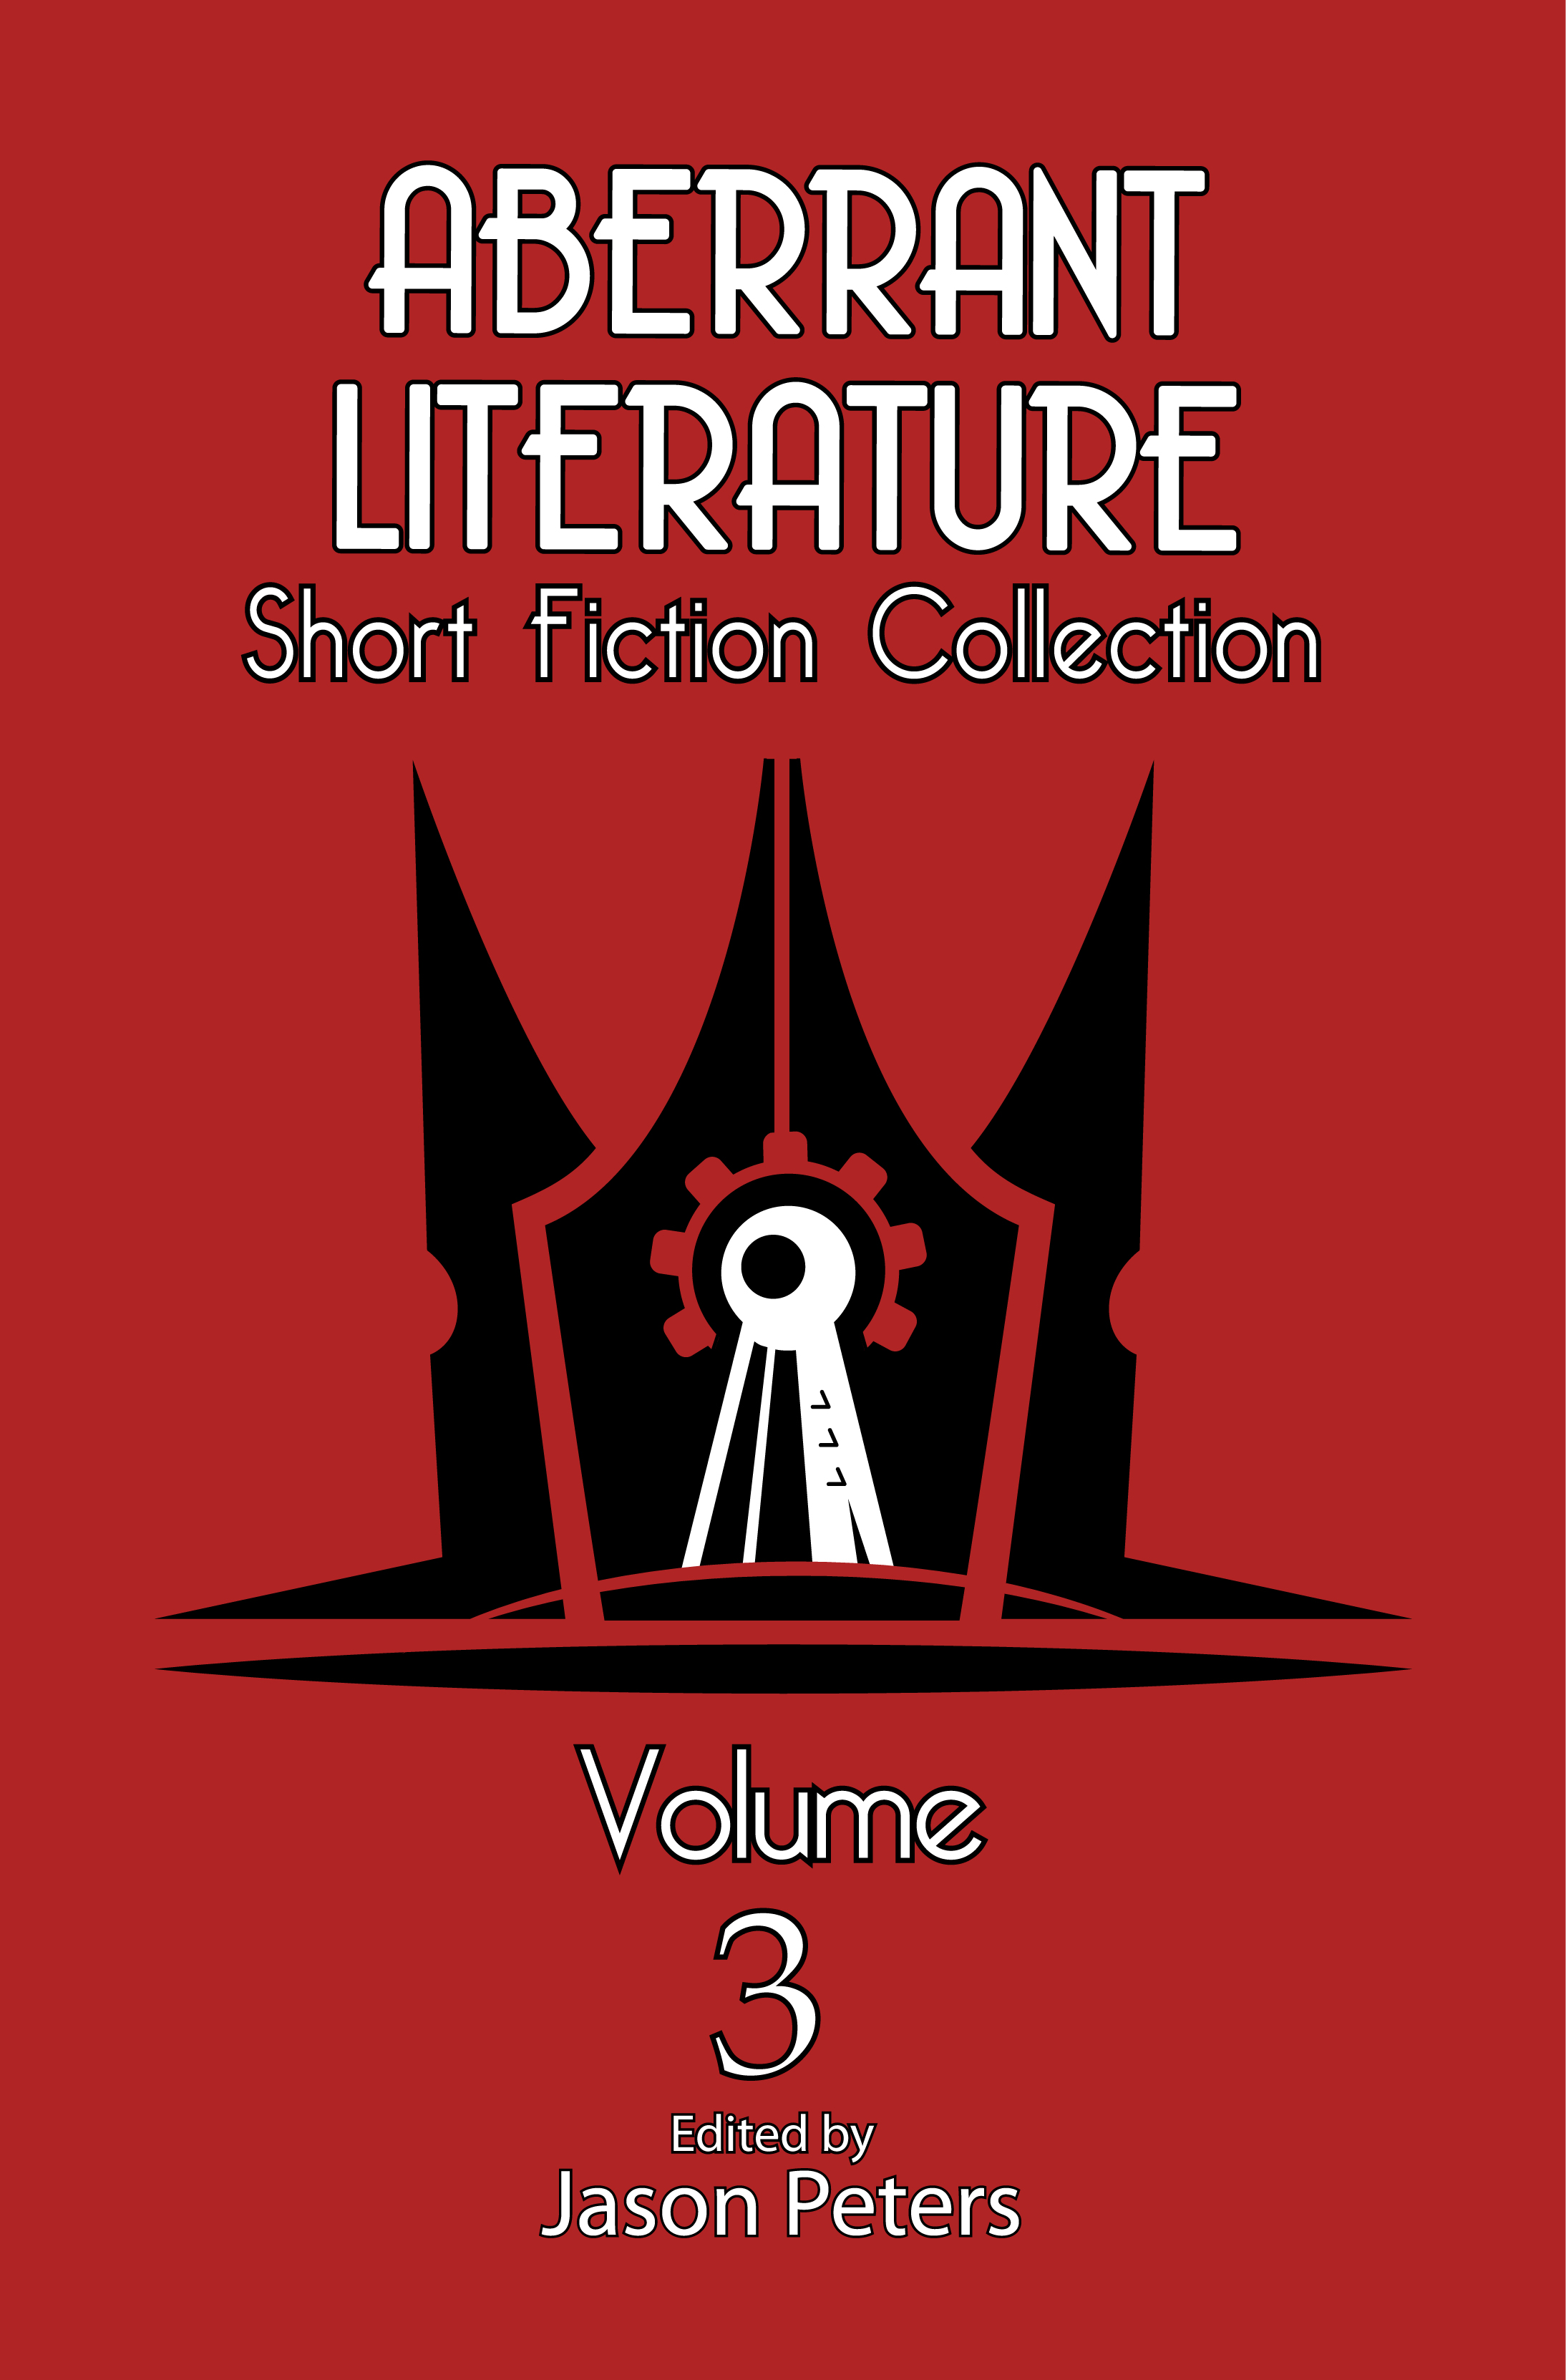 Aberrant Literature Short Fiction Collection Volume 3 is live and for sale!